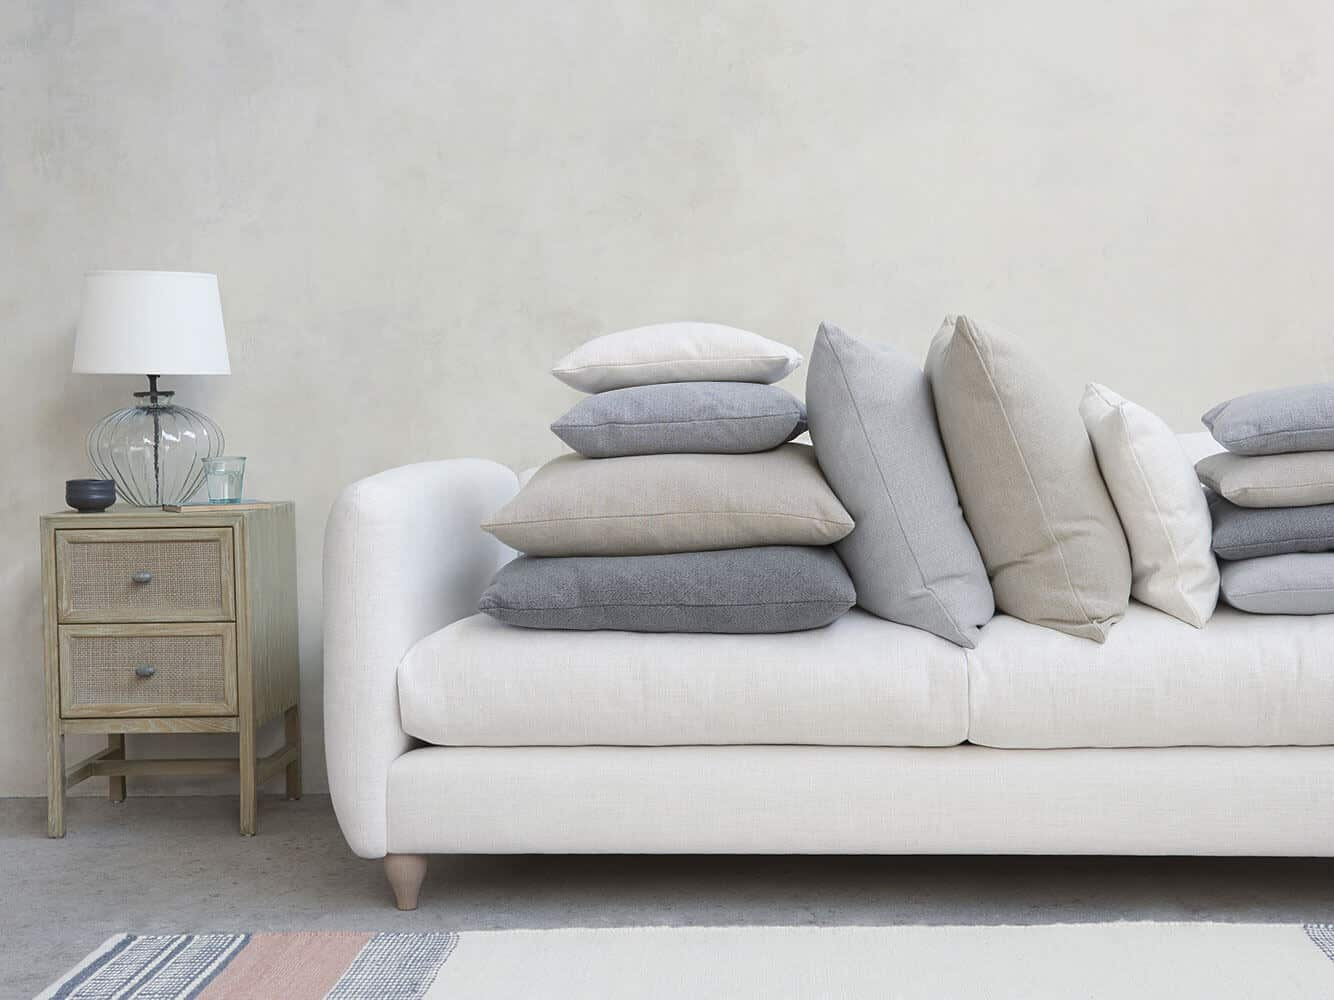 A squishy white sofa in bamboo fabric is covered in cushions. Bamboo is a great material for sustainable interior design